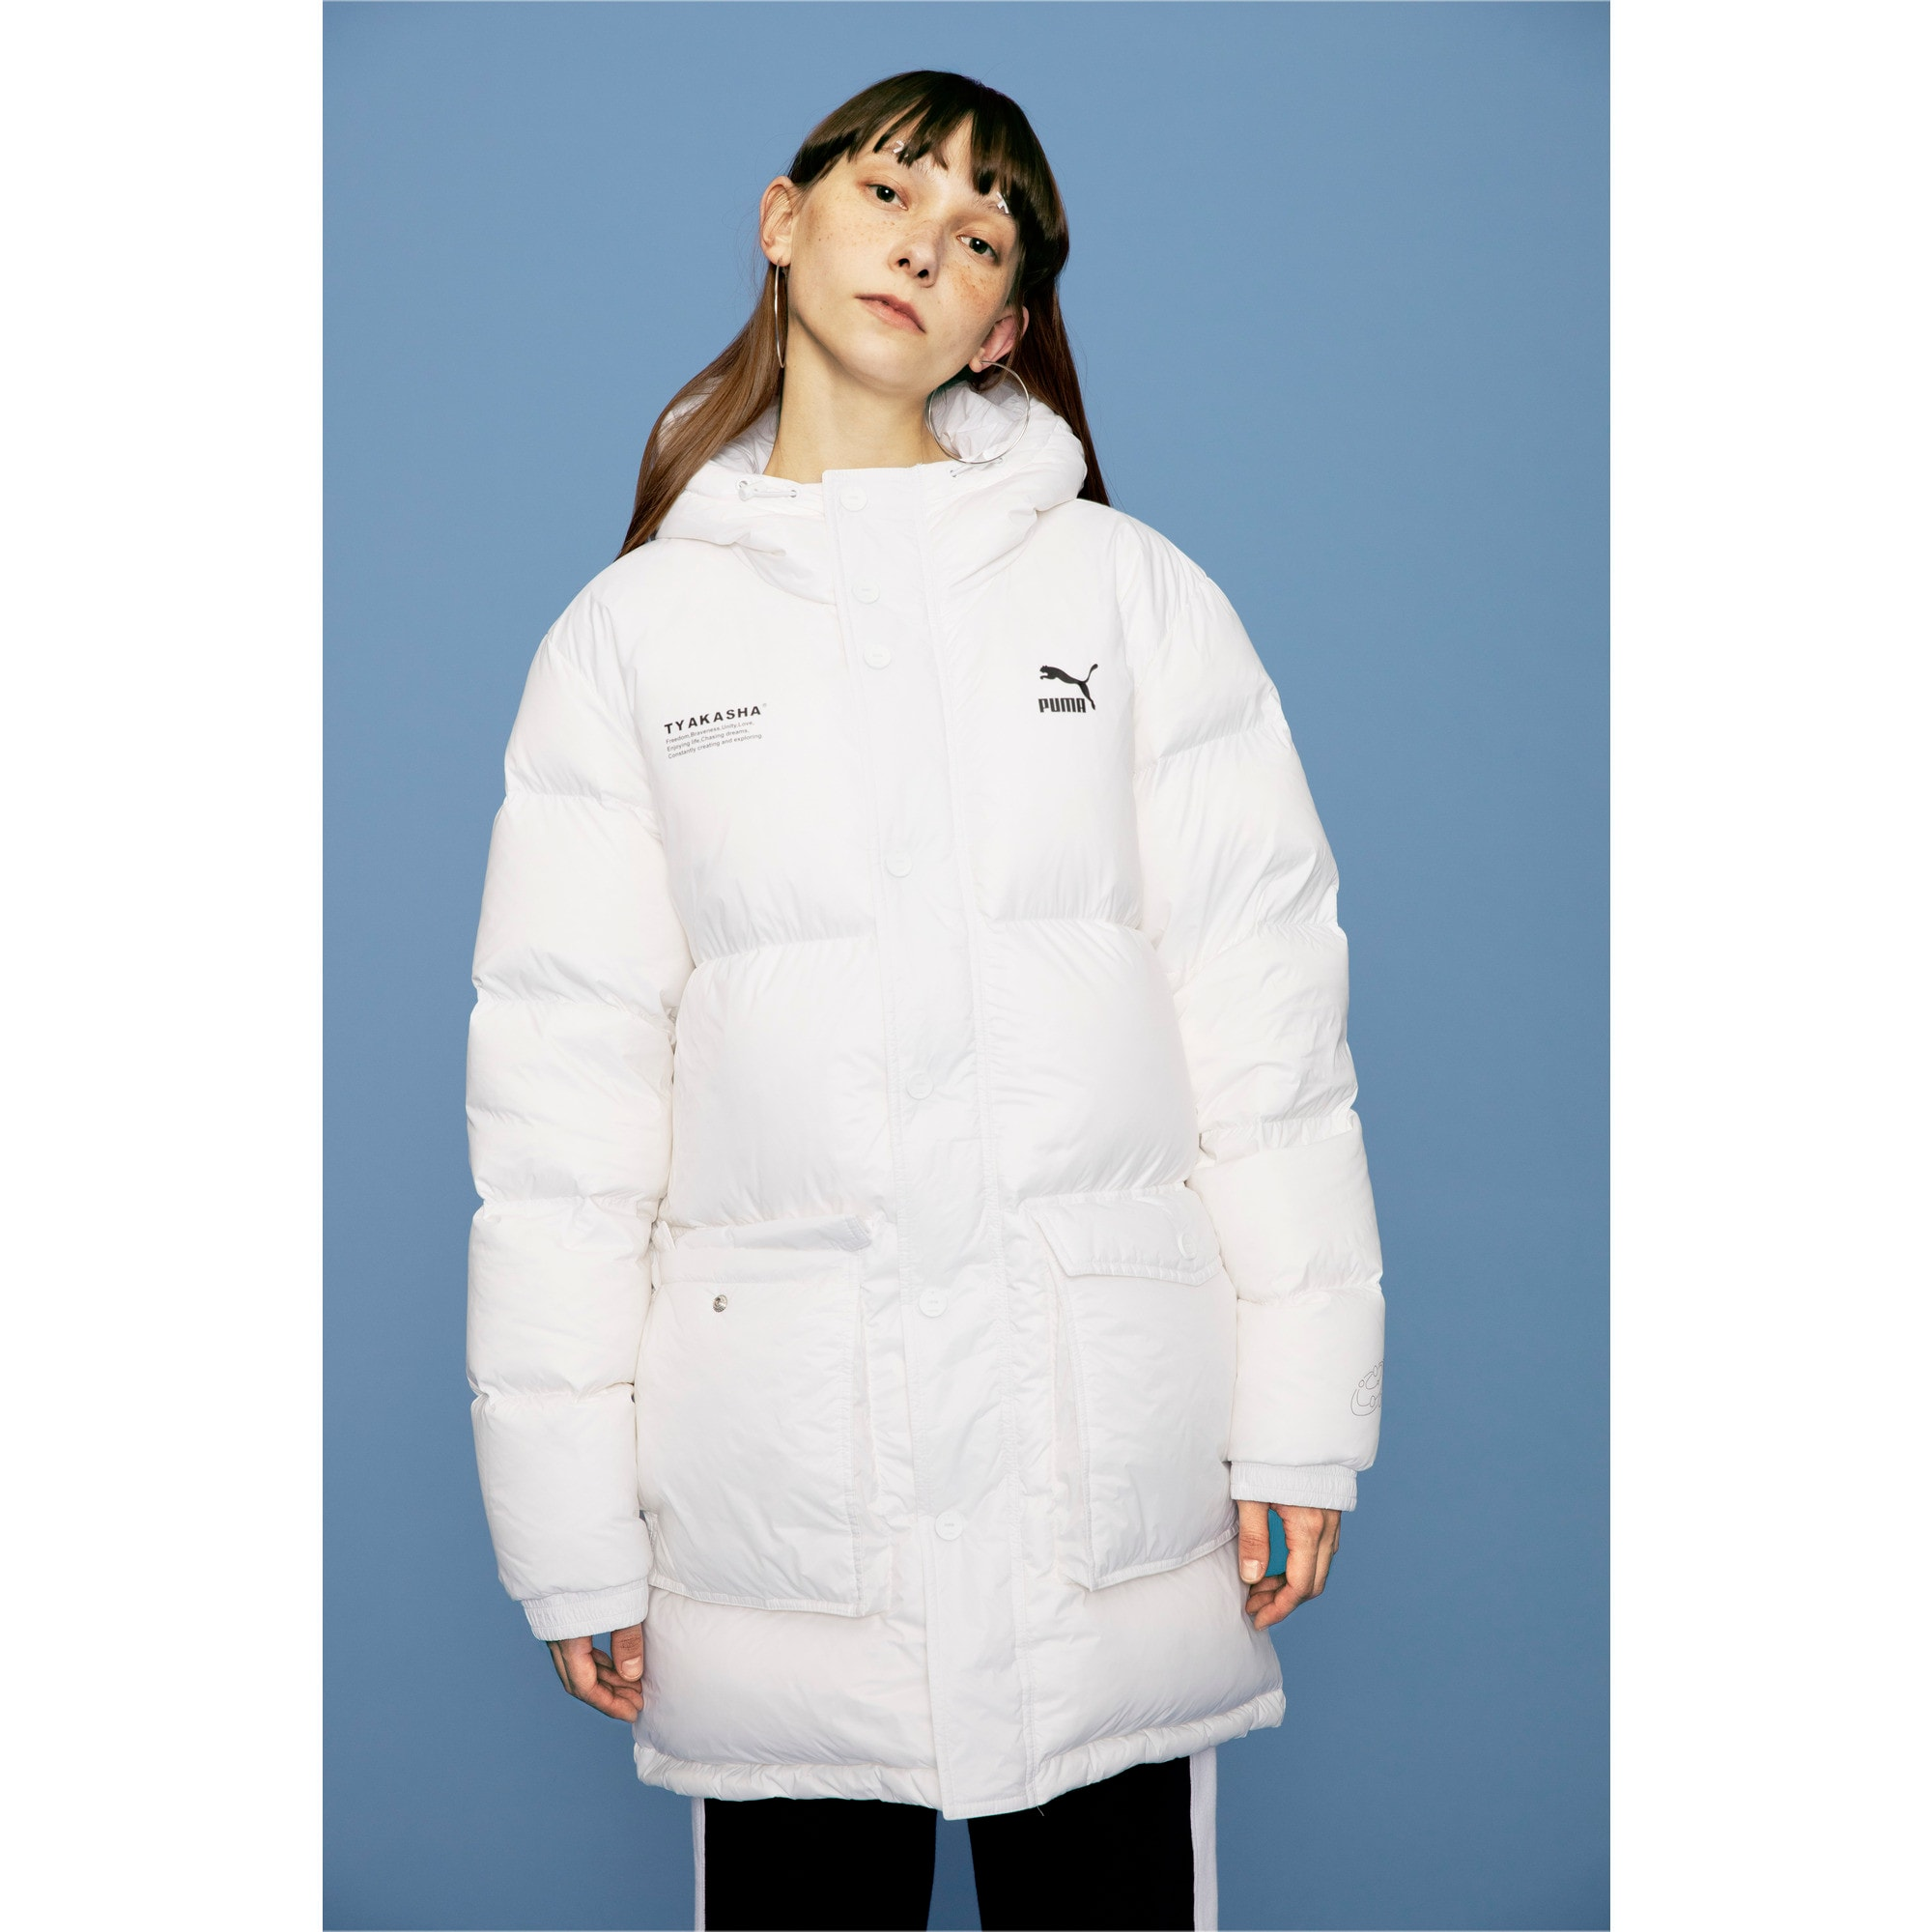 Thumbnail 7 of PUMA x TYAKASHA Woven Down Parka, Puma White, medium